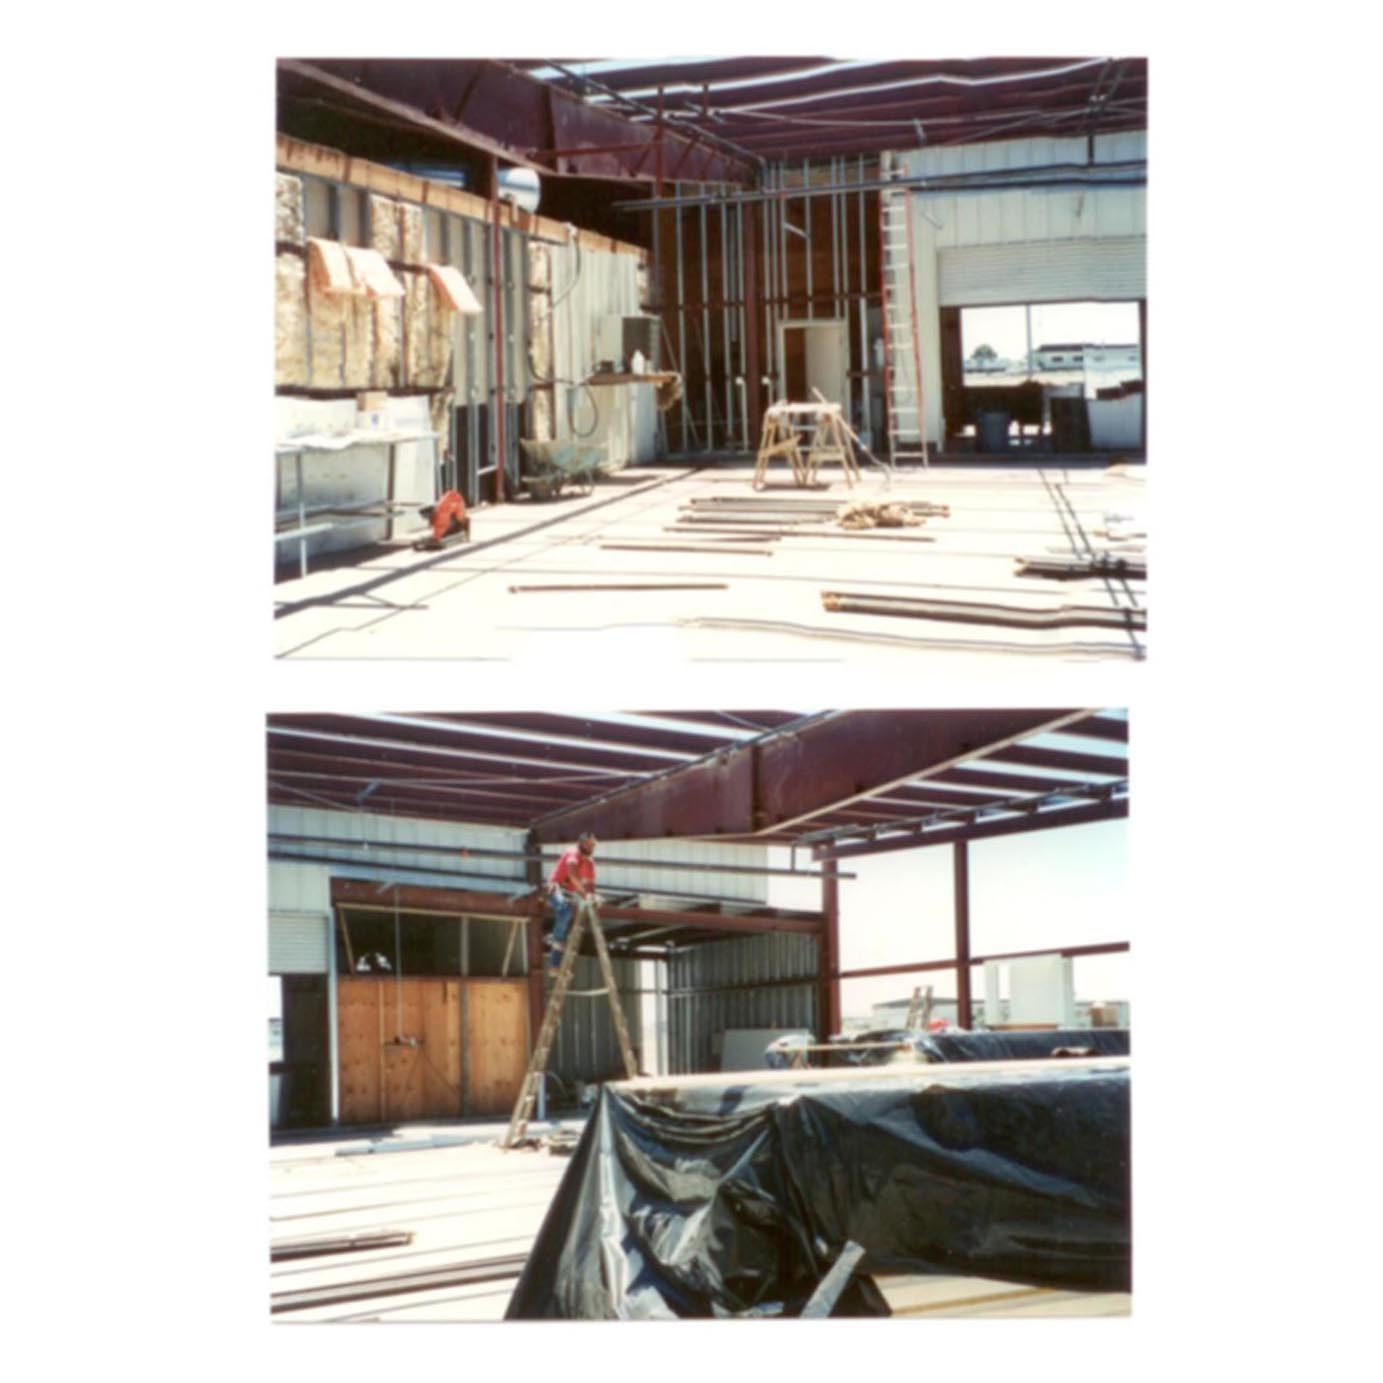 Early 1990s. Expansion in SPOC Modesto, California processing plant.